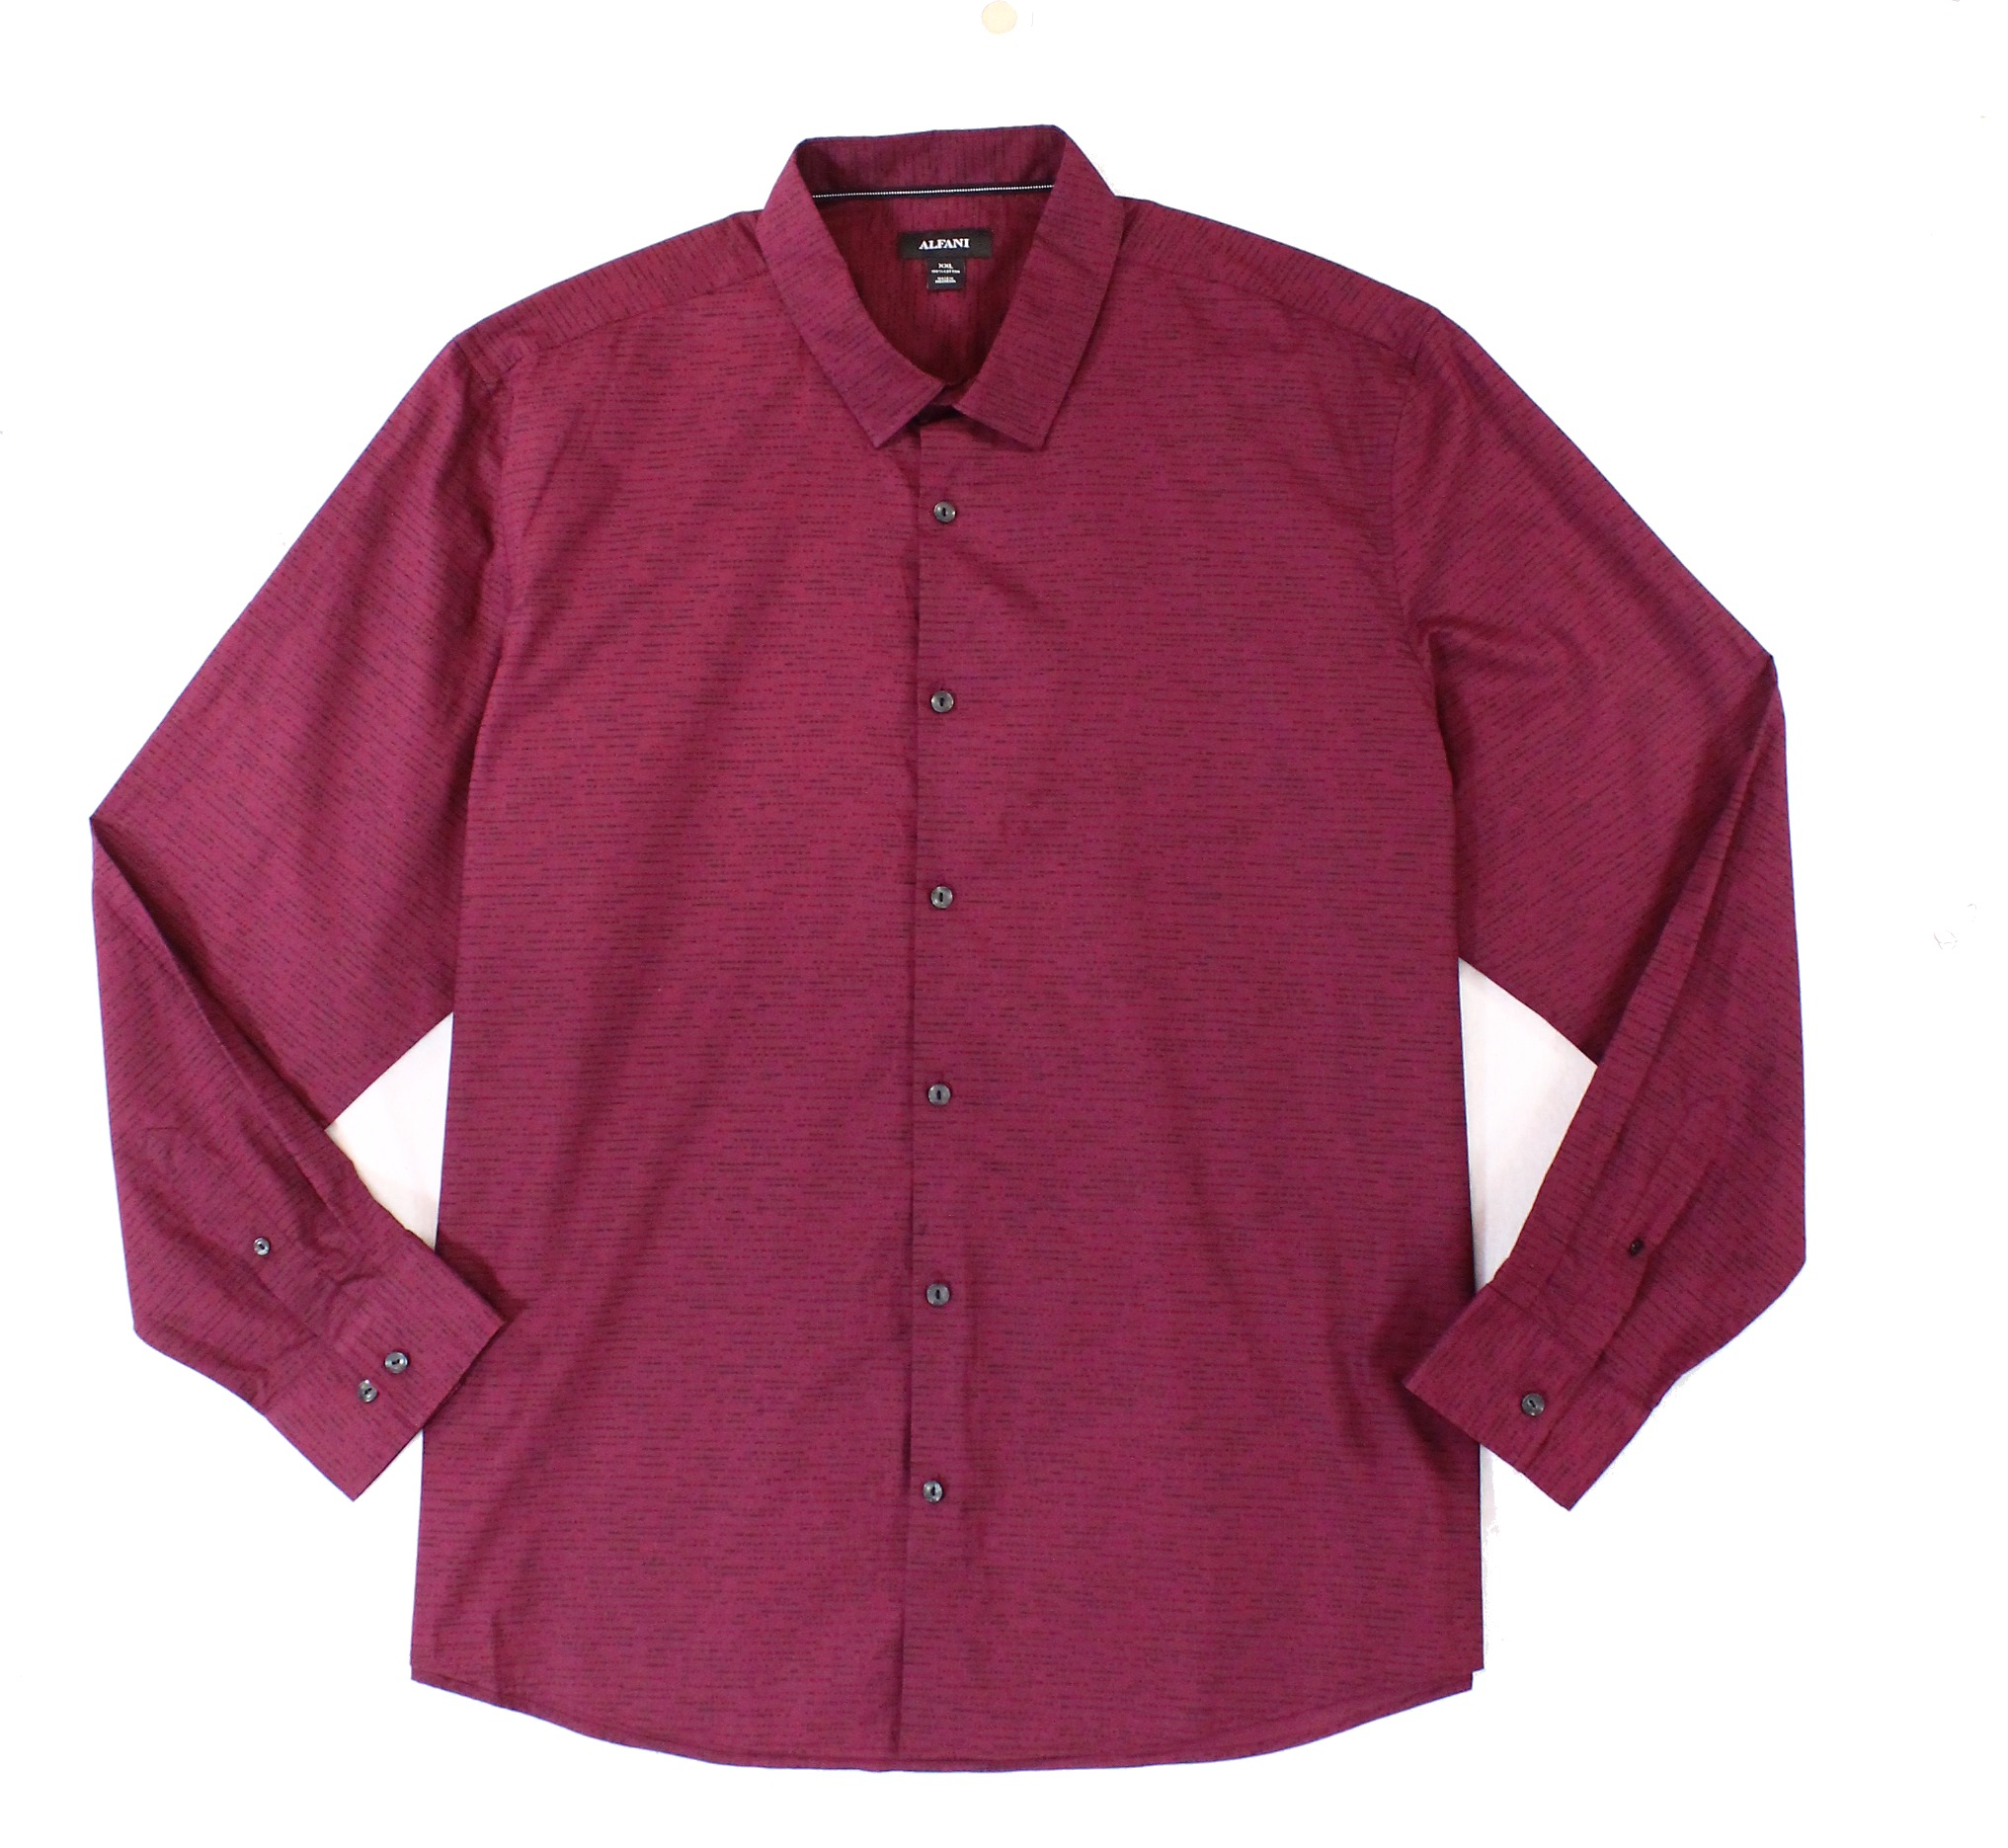 Alfani NEW Savory Wine Red Mens Size 2XL Craven Dash Button Down Shirts